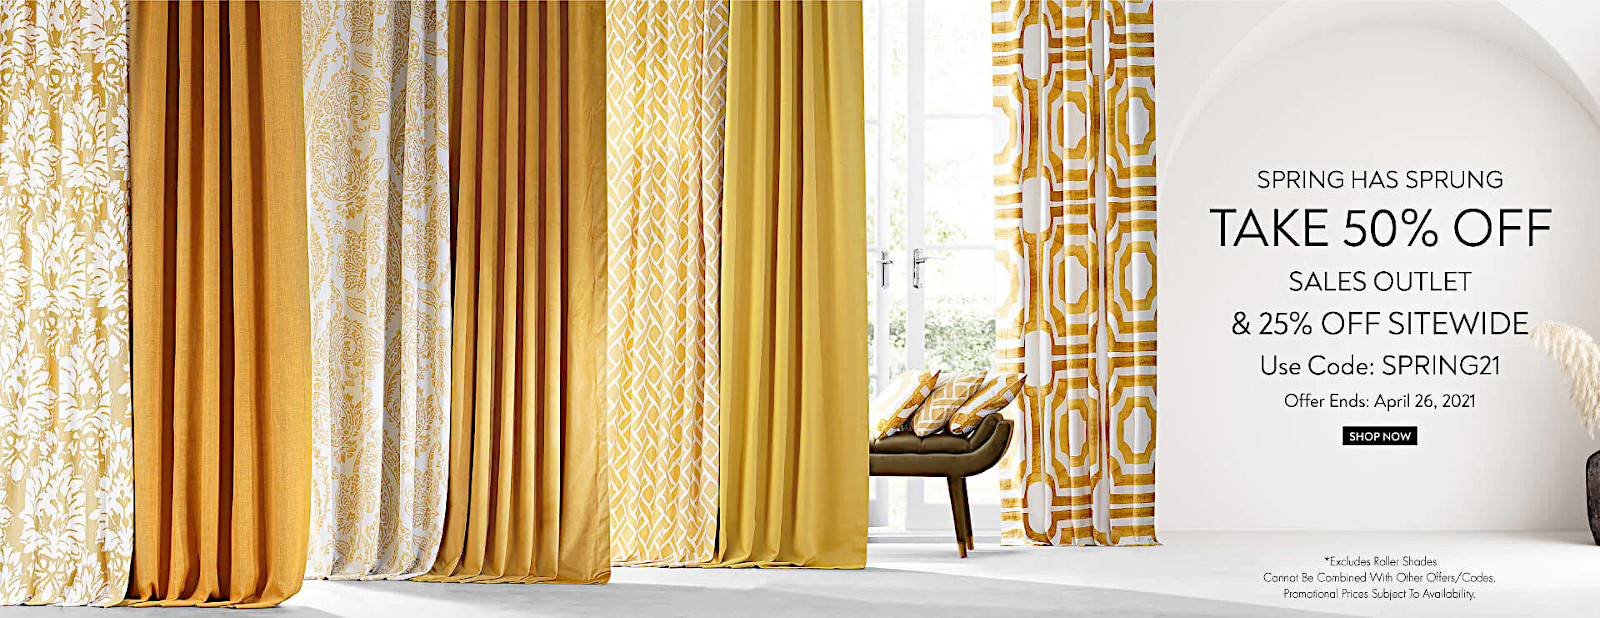 Lovable curtains and drapes